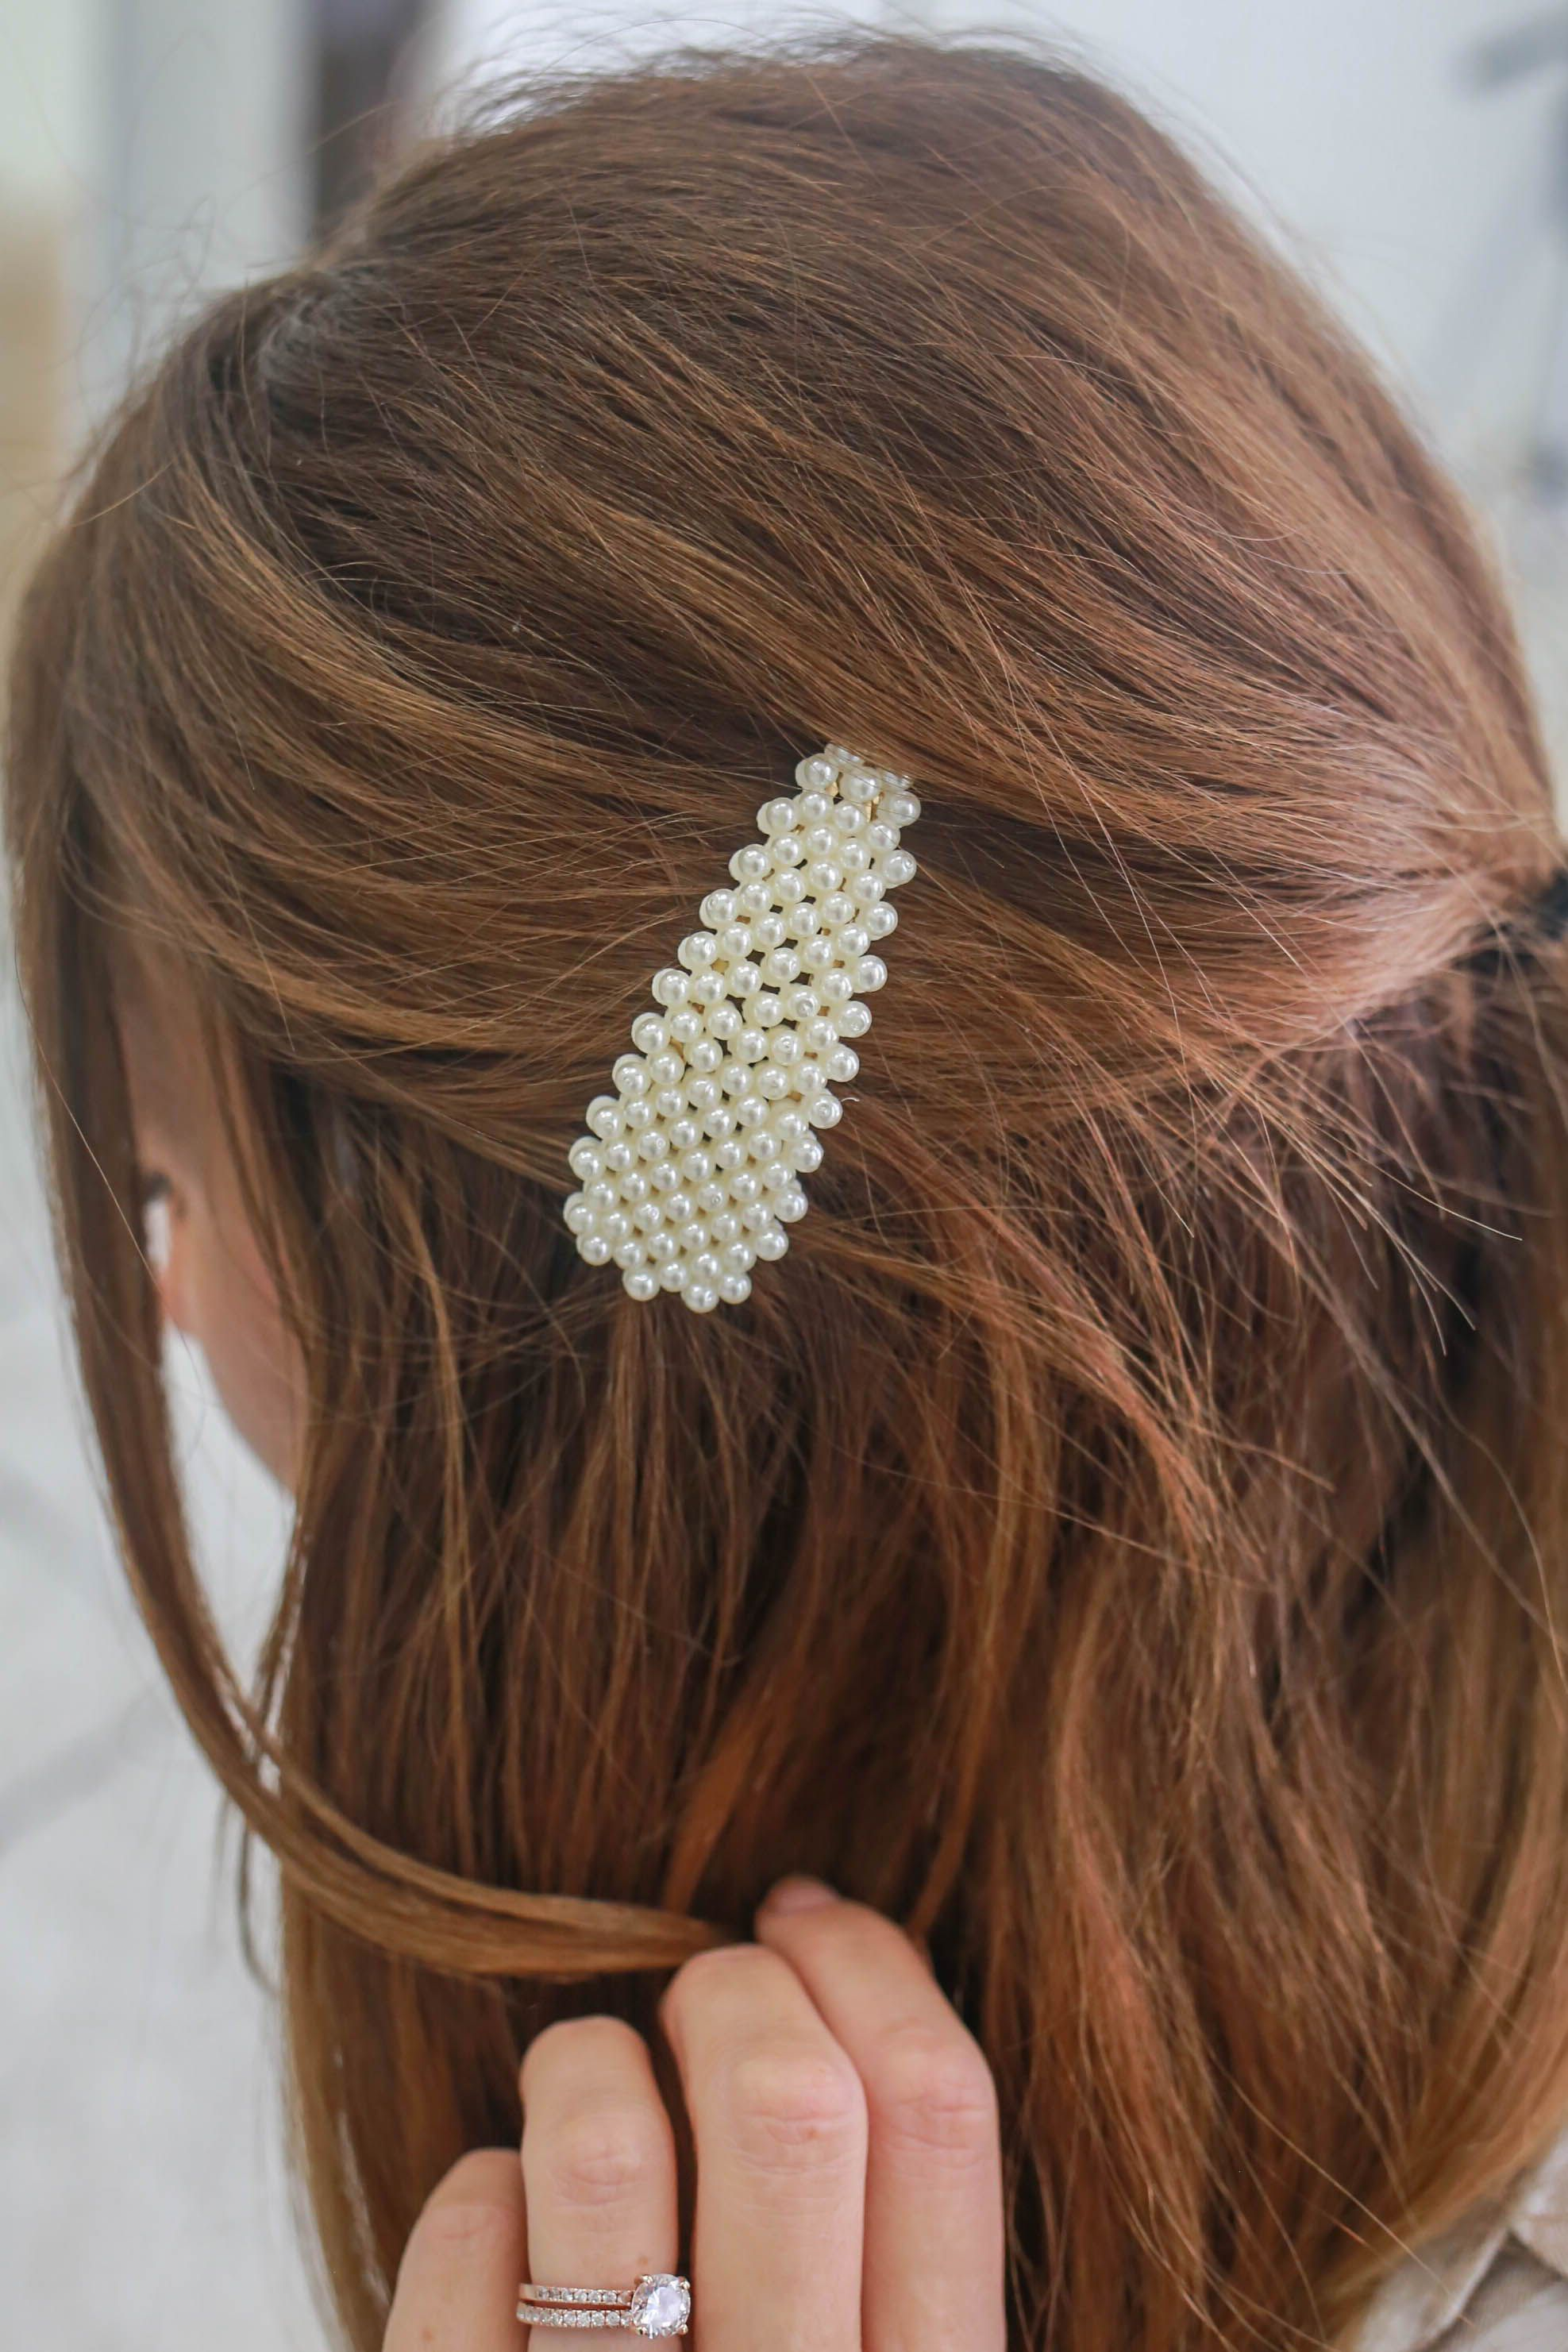 FRENCH STUDDED BARRETTE,BARRETTES SLIDES GRIPS COLOUR HAIR CLIP ACCESSORIES NEW